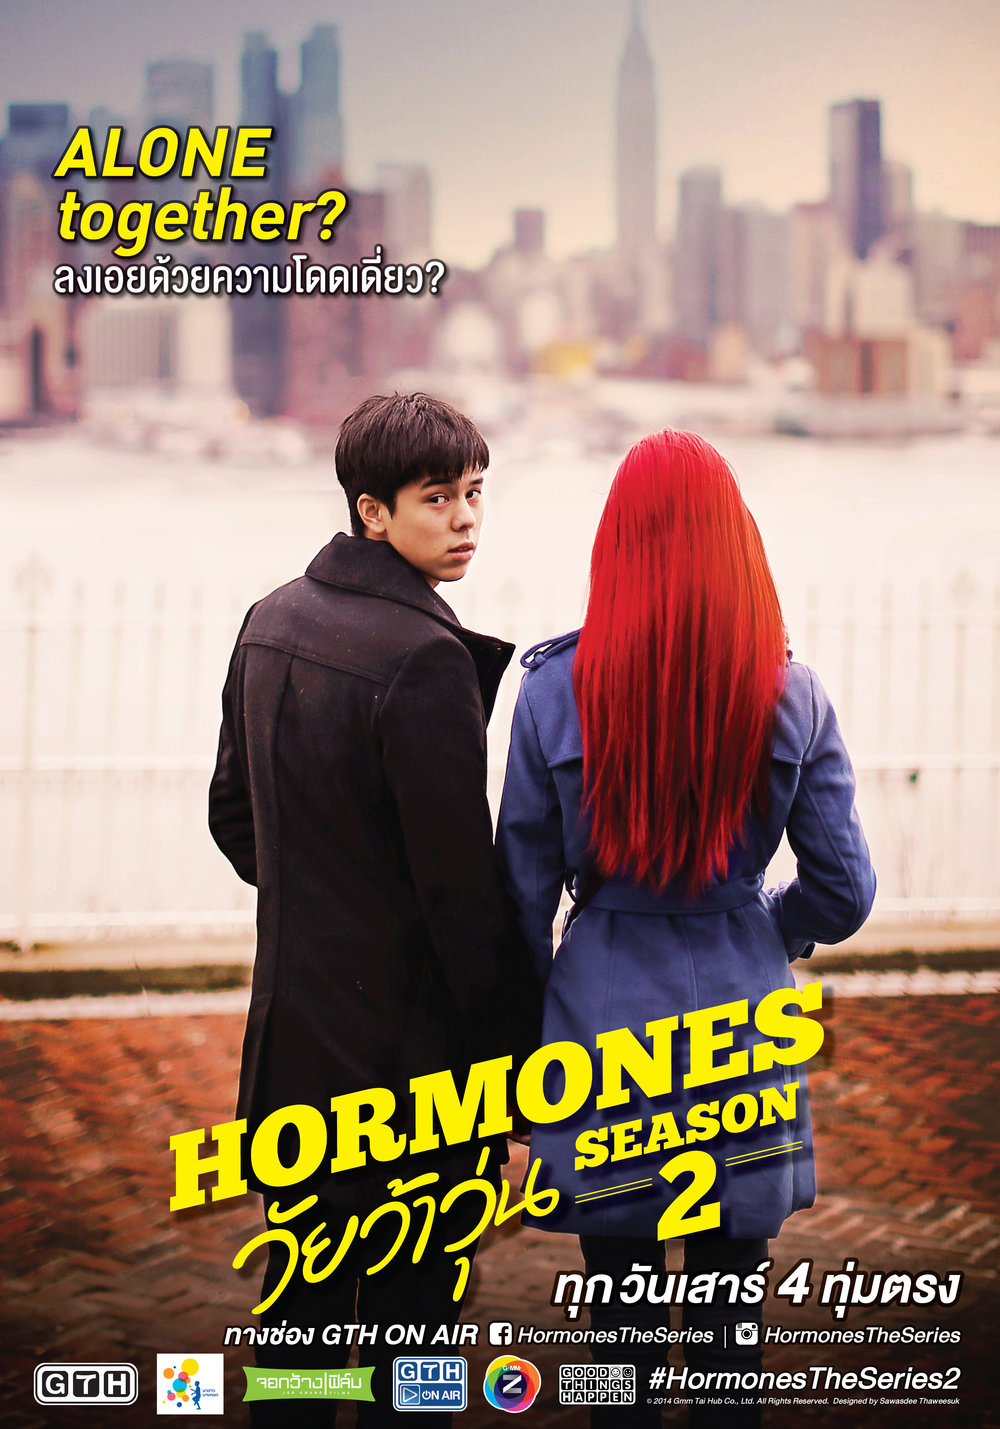 AW POSTER HORMONES 2 PEACH_NUENG 1MB-01.jpg